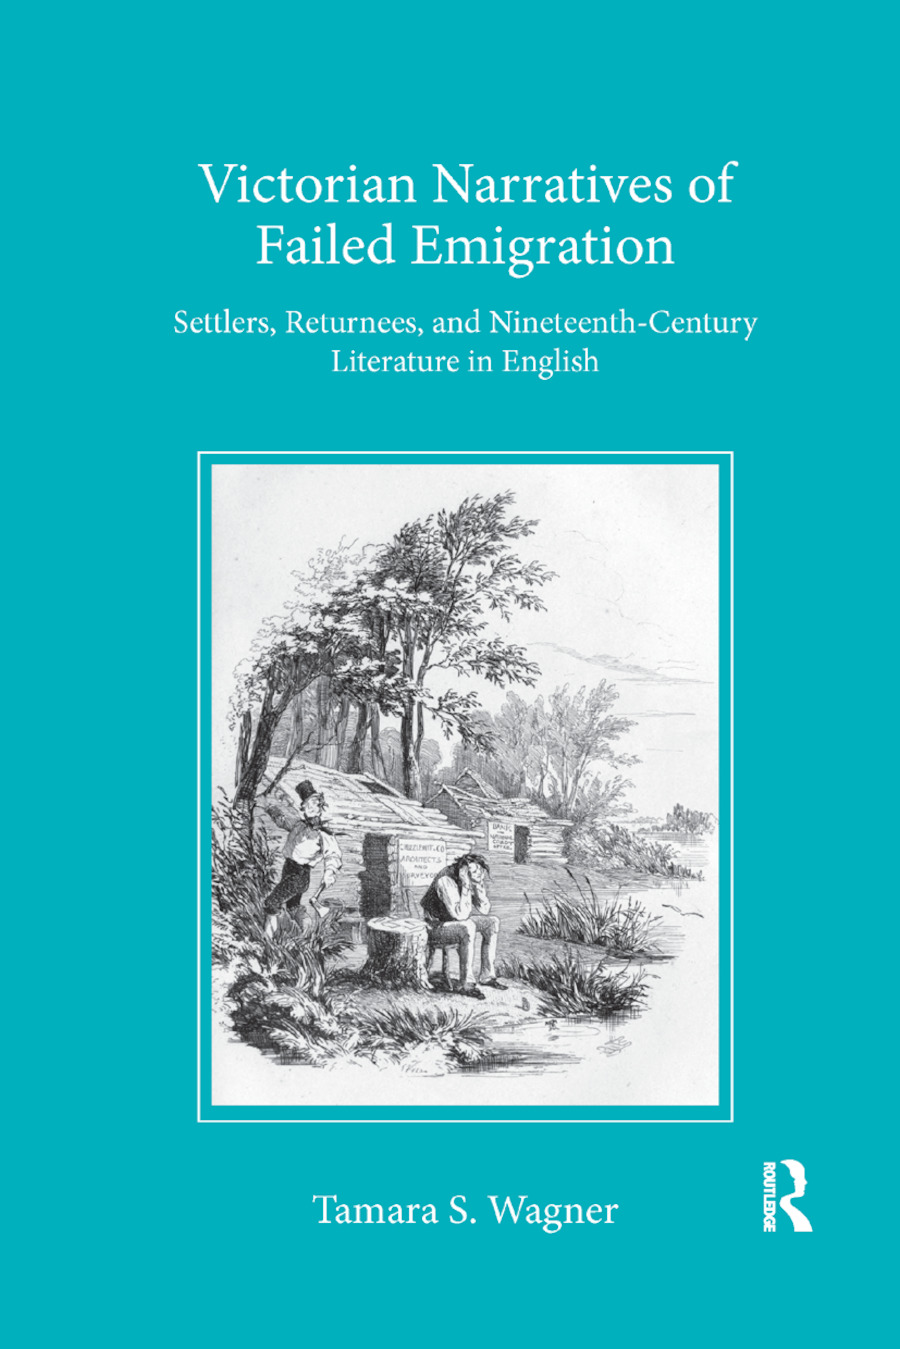 Victorian Narratives of Failed Emigration